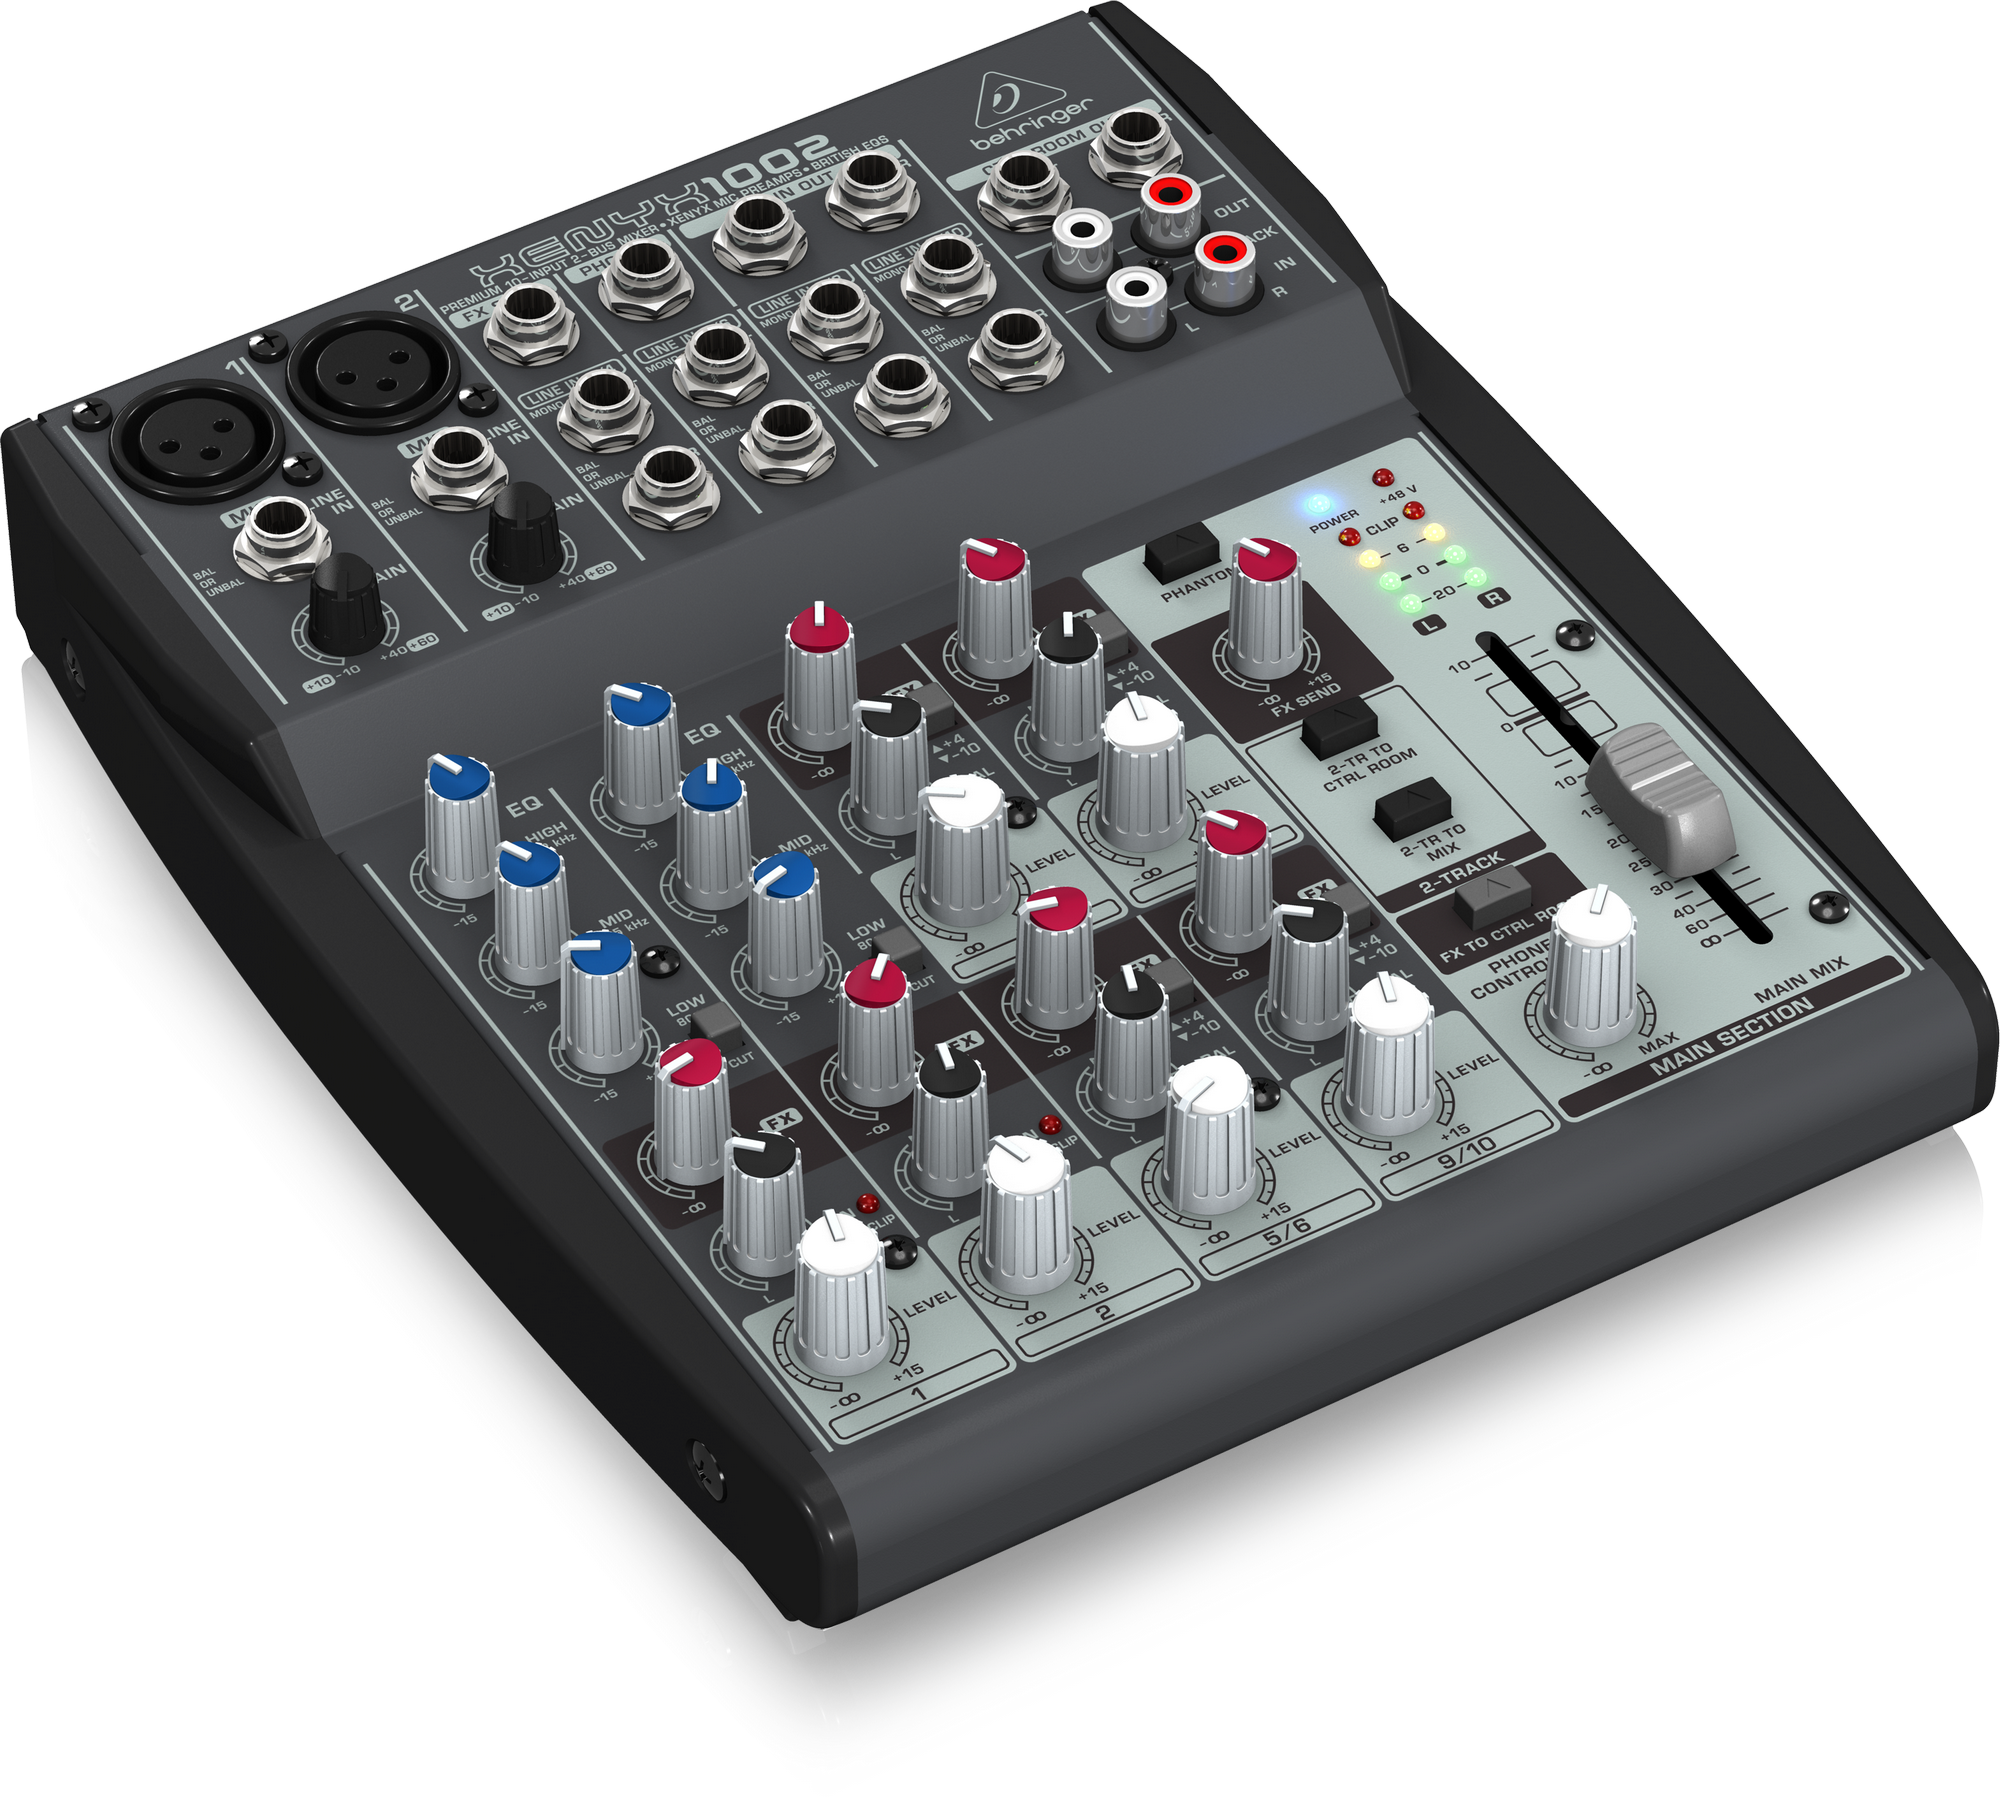 Behringer XENYX 1002 - Analog mixing console